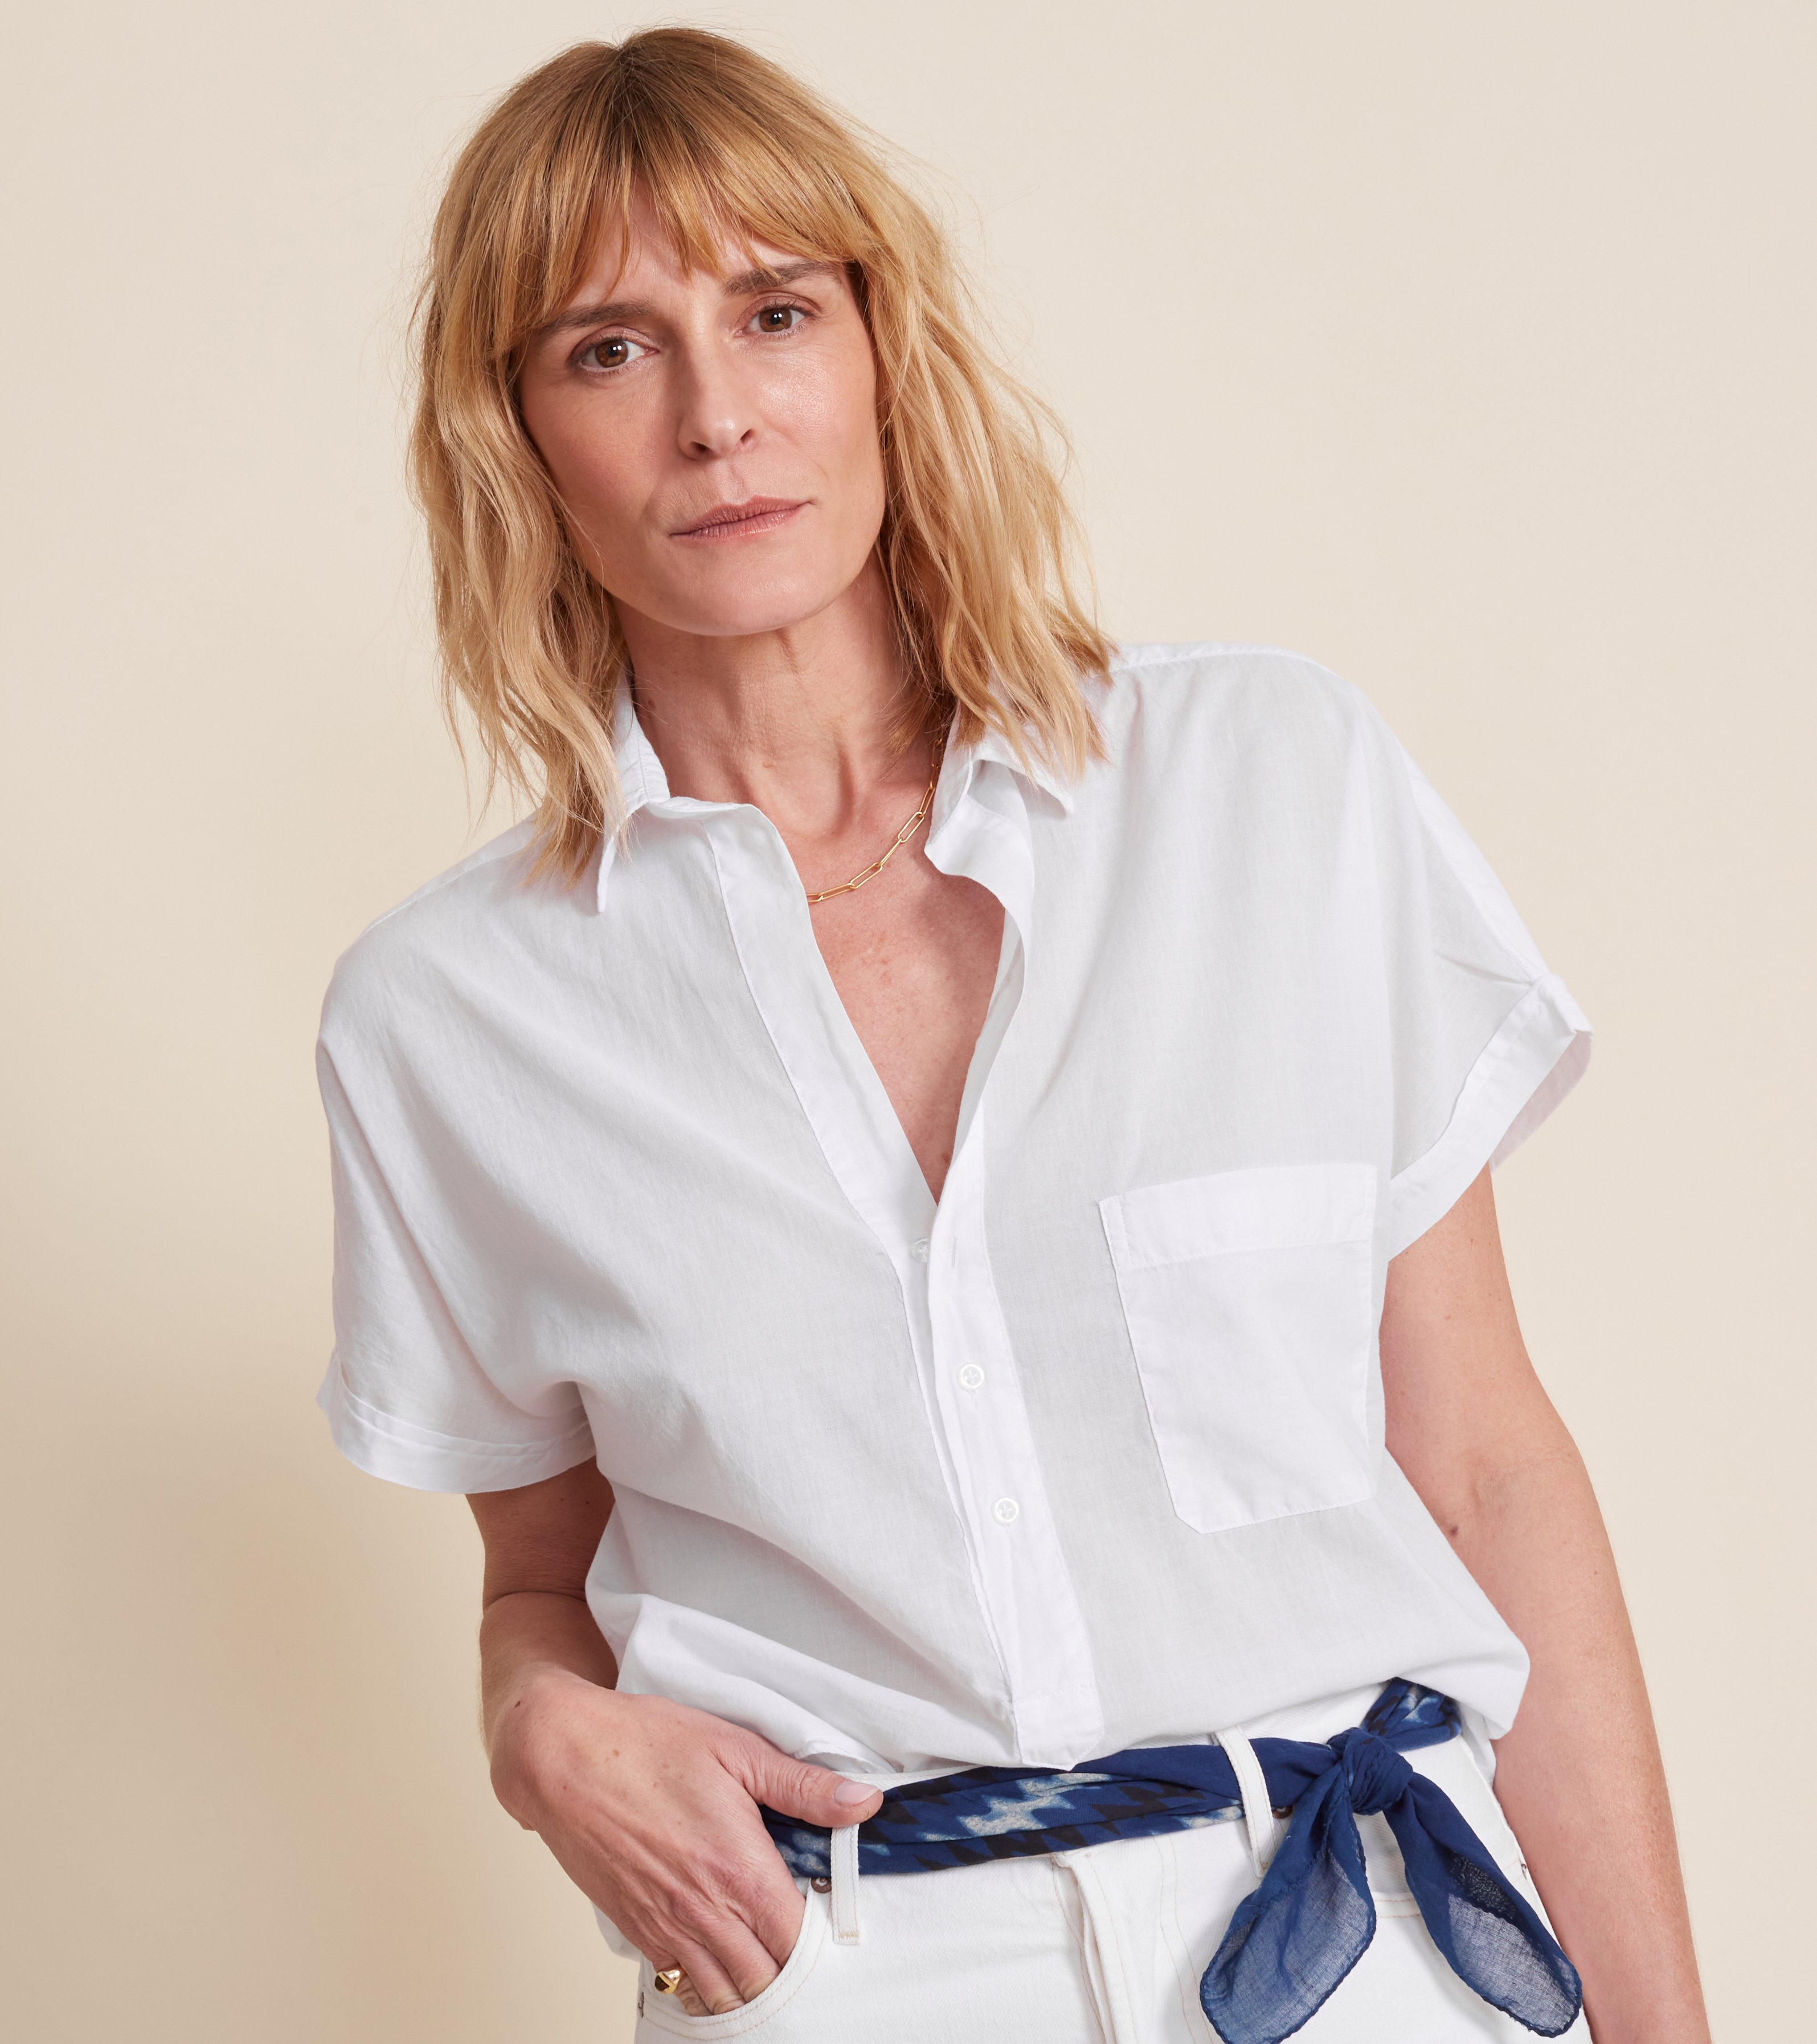 Image of The Artist Short Sleeve Shirt White, Tissue Cotton Final Sale